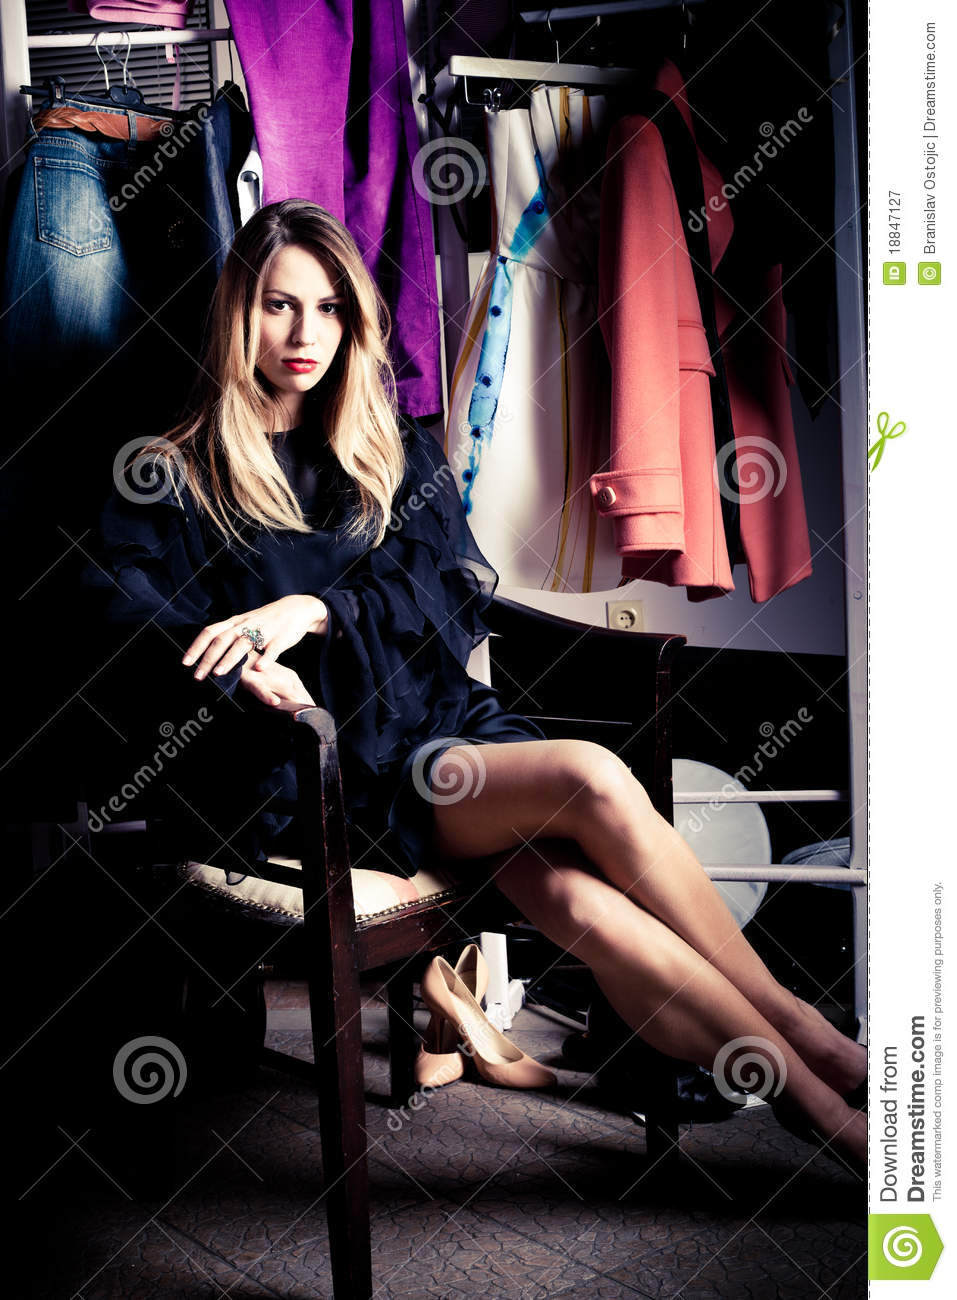 In Dressing Room Royalty Free Stock Photography Image